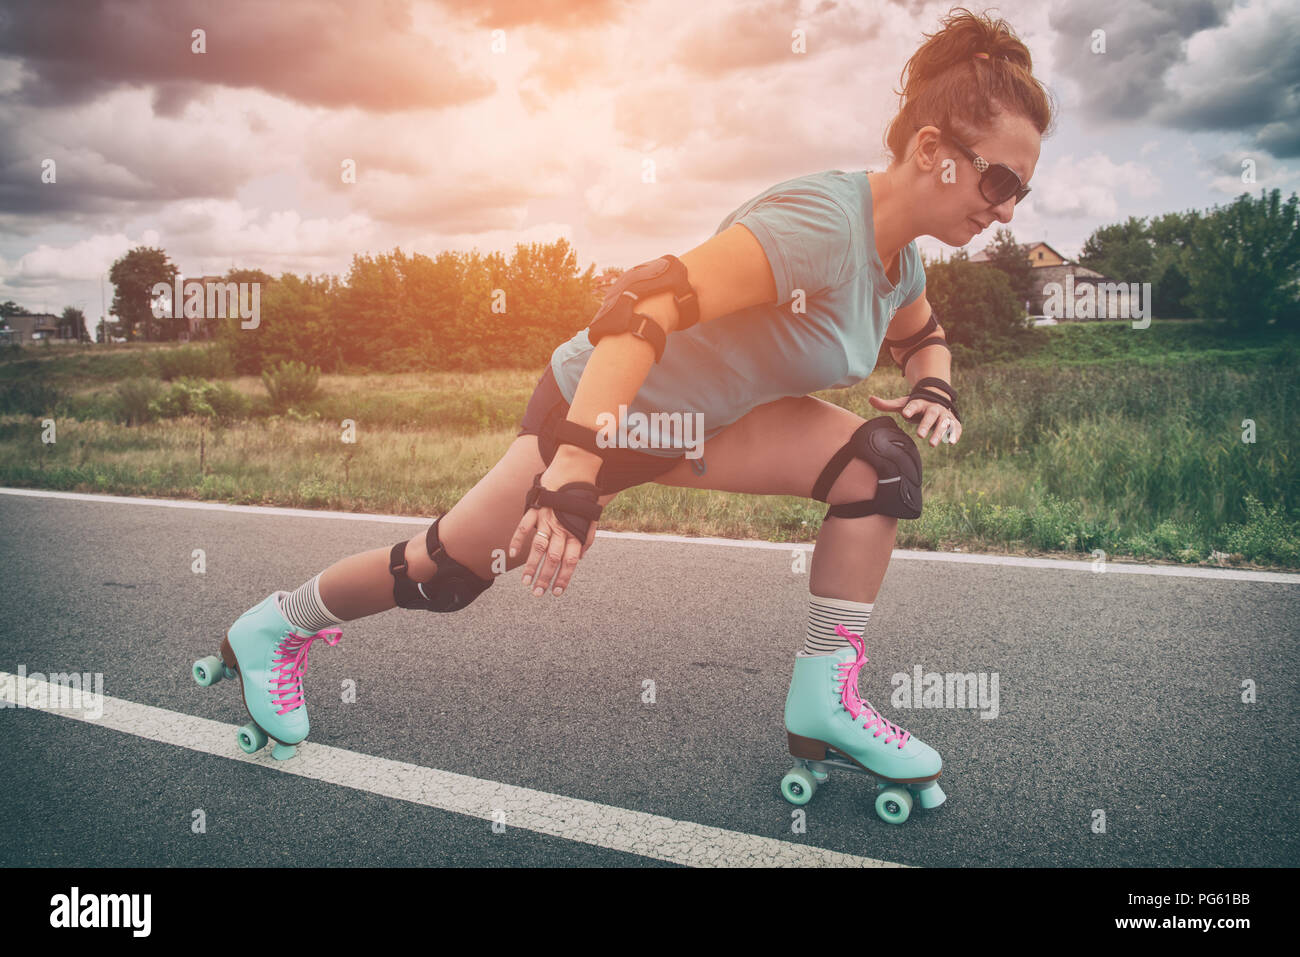 Woman In A Vintage Roller Skates Retro Quad Roller Skates Riding Outdoors Stock Photo Alamy